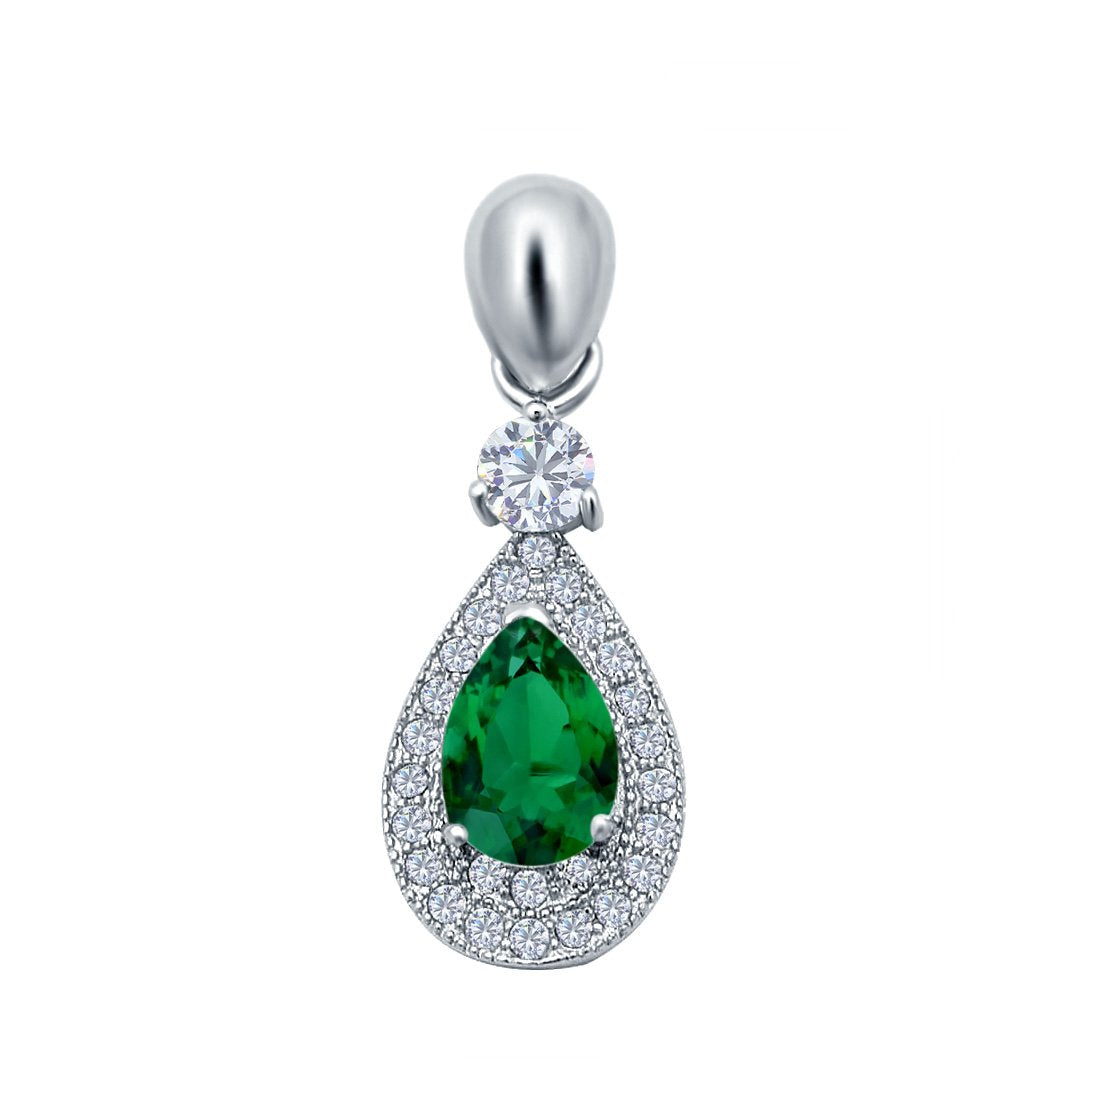 Halo Teardrop Pendant Simulated Green Emerald CZ 925 Sterling Silver (26mm)